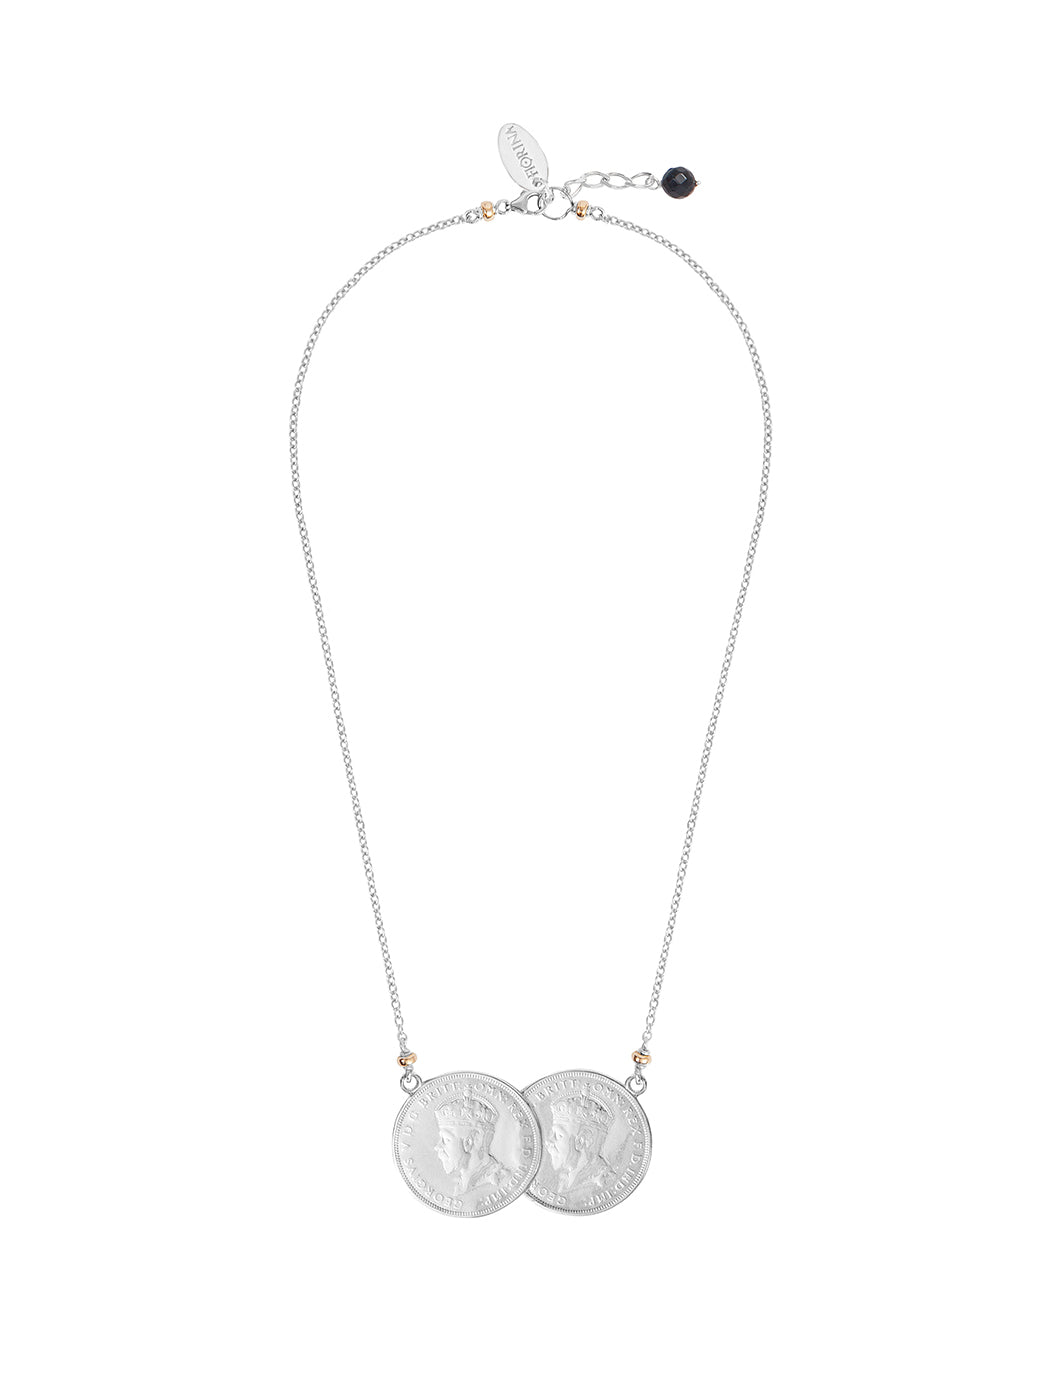 Fiorina Jewellery King George Necklace